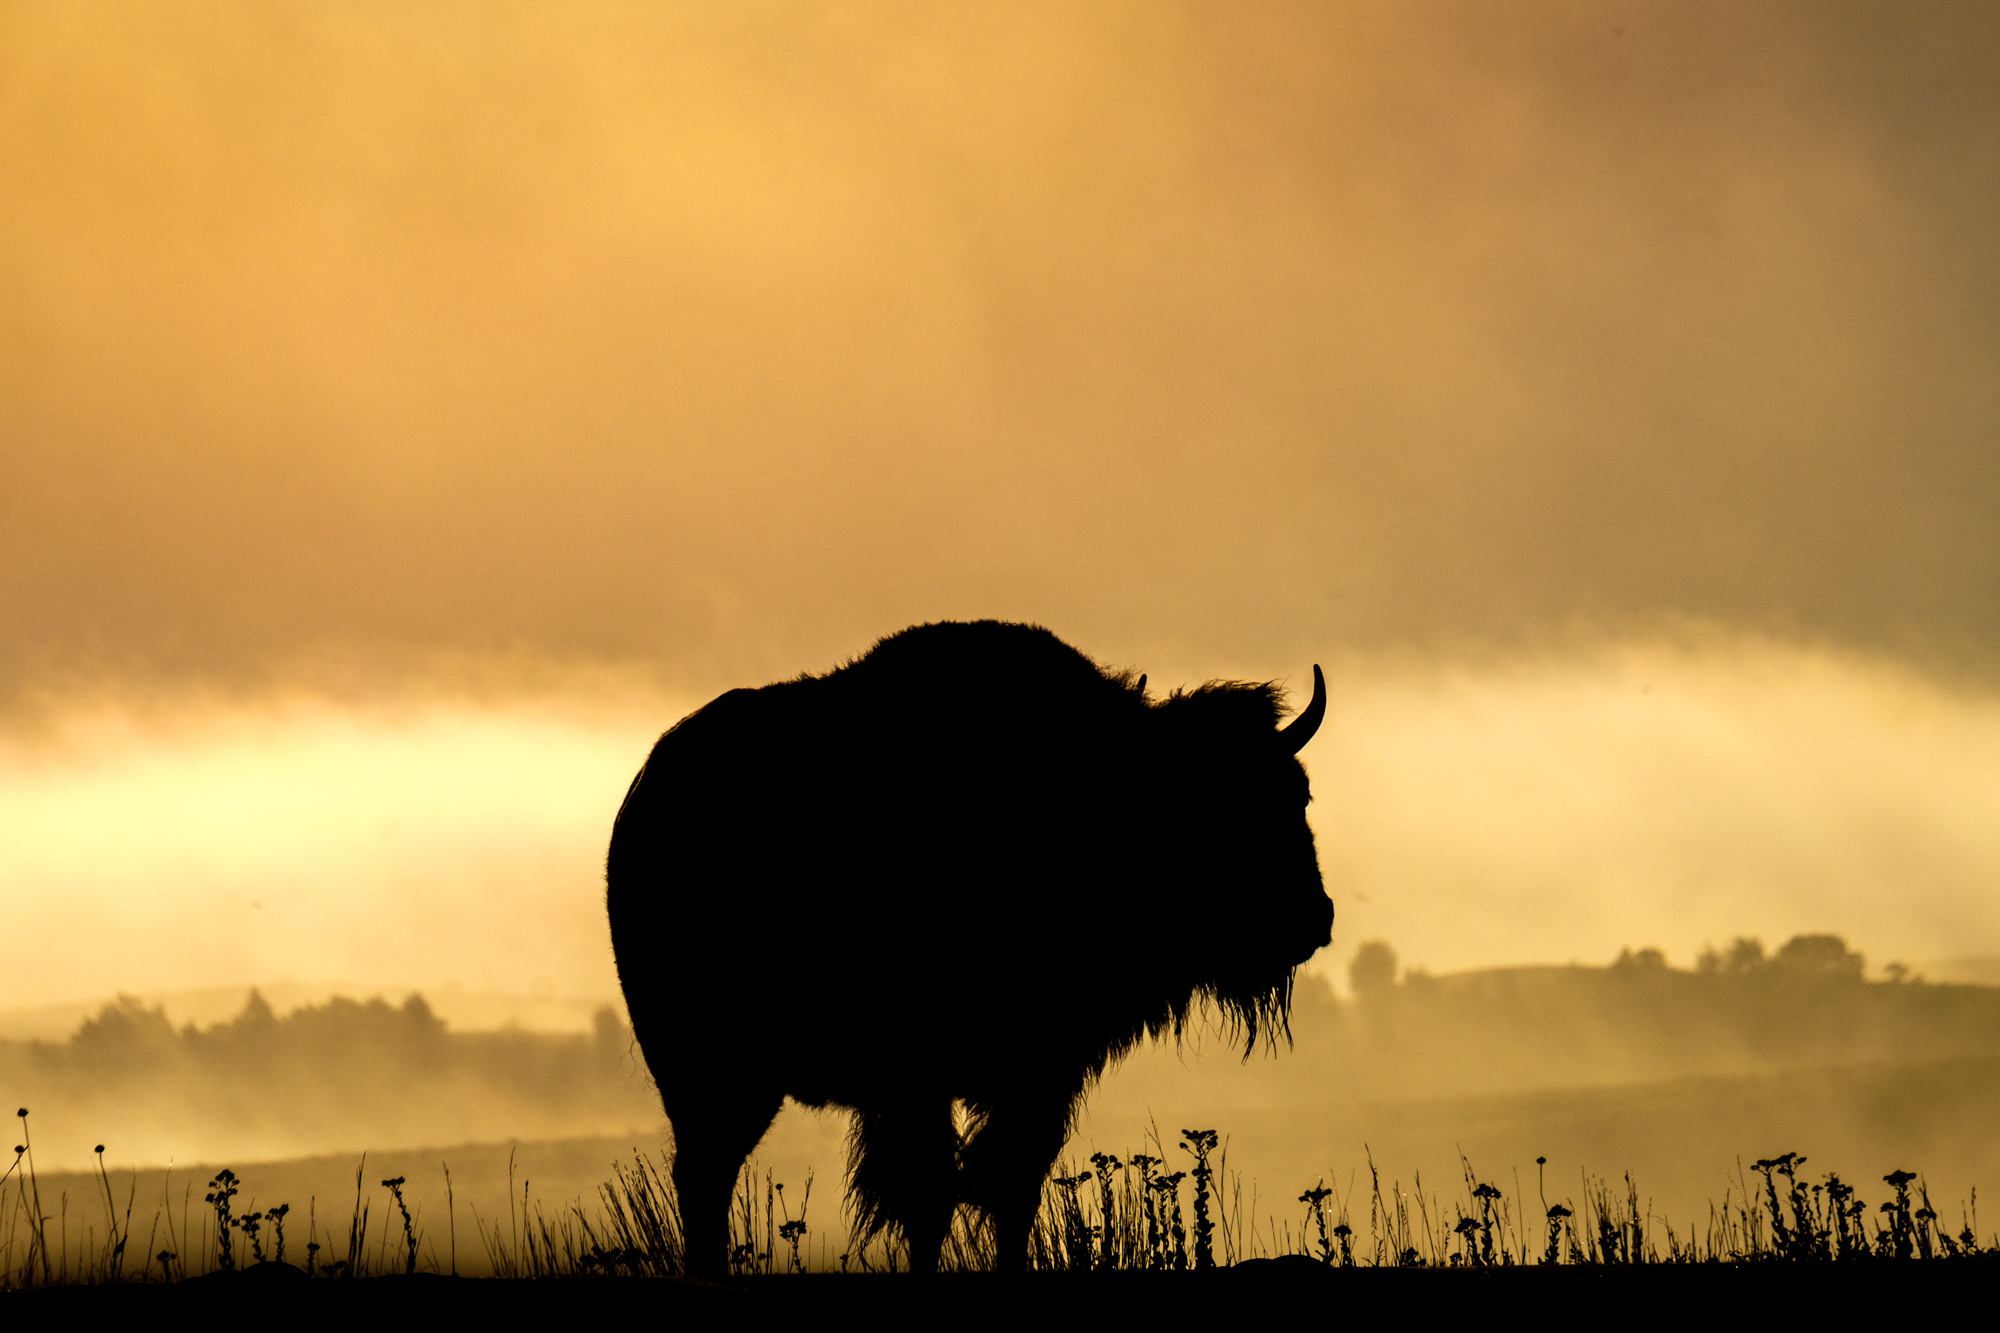 The park is also known for large herds of bison.